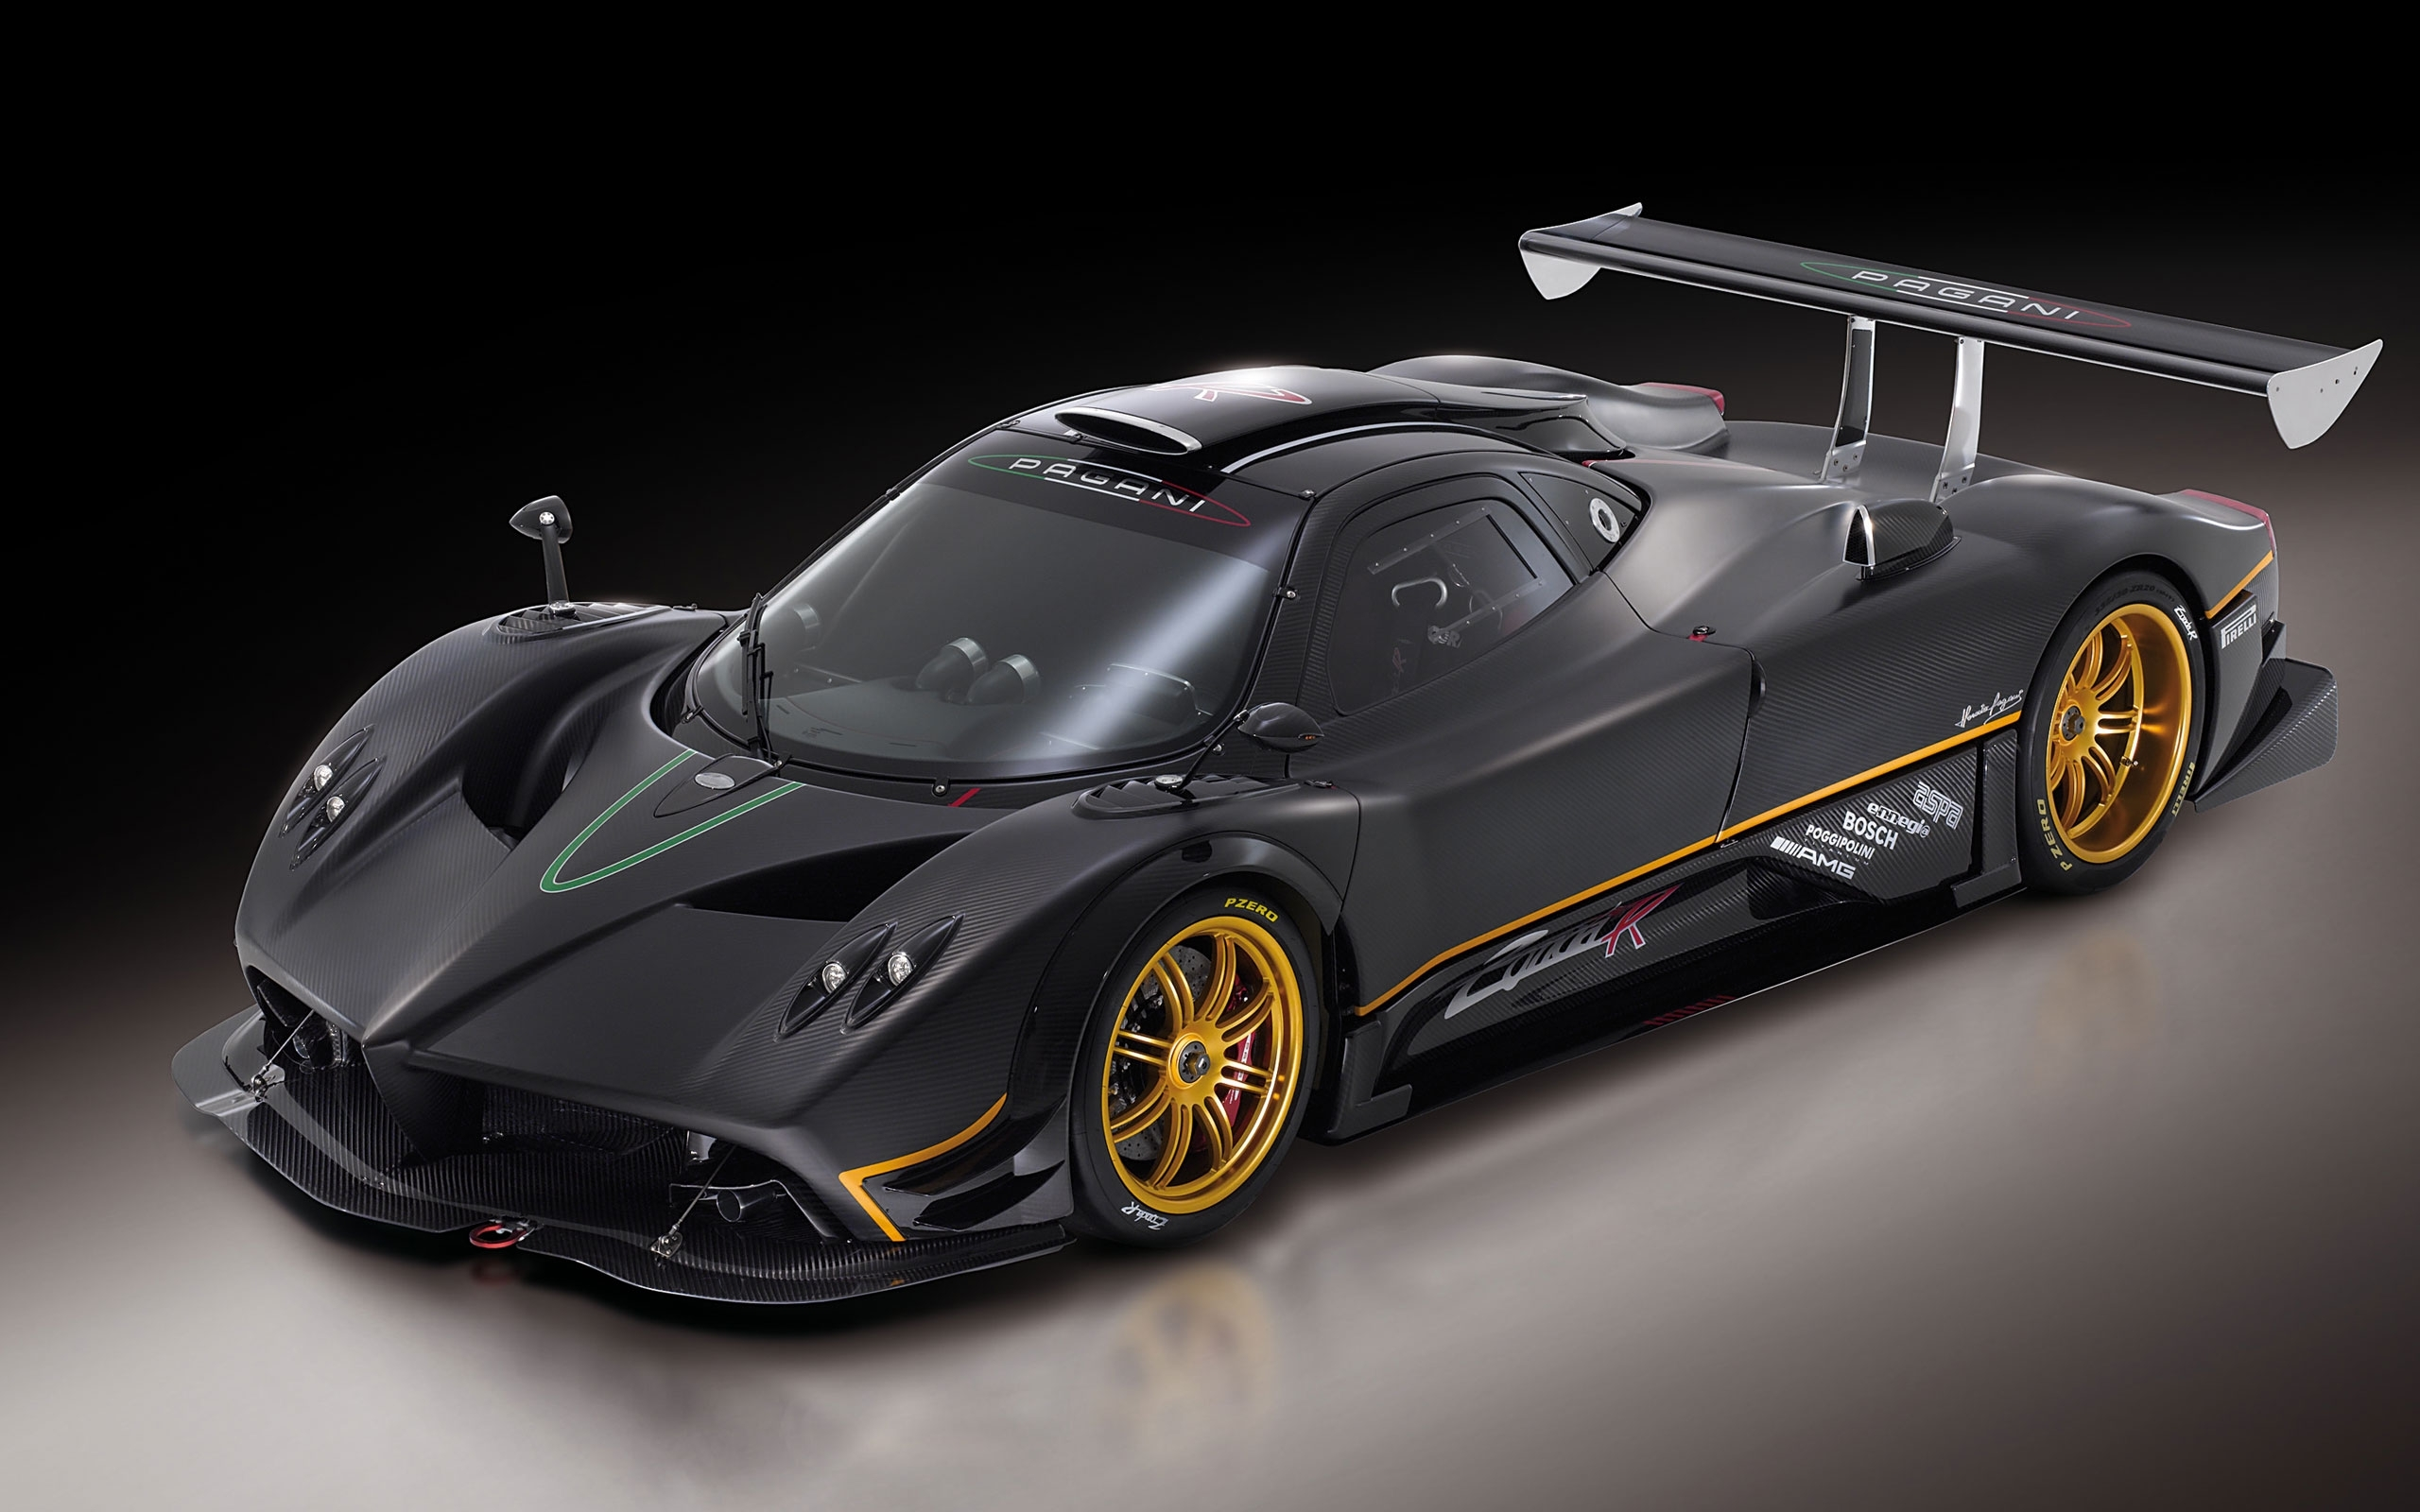 pagani zonda r wallpaper | hd car wallpapers